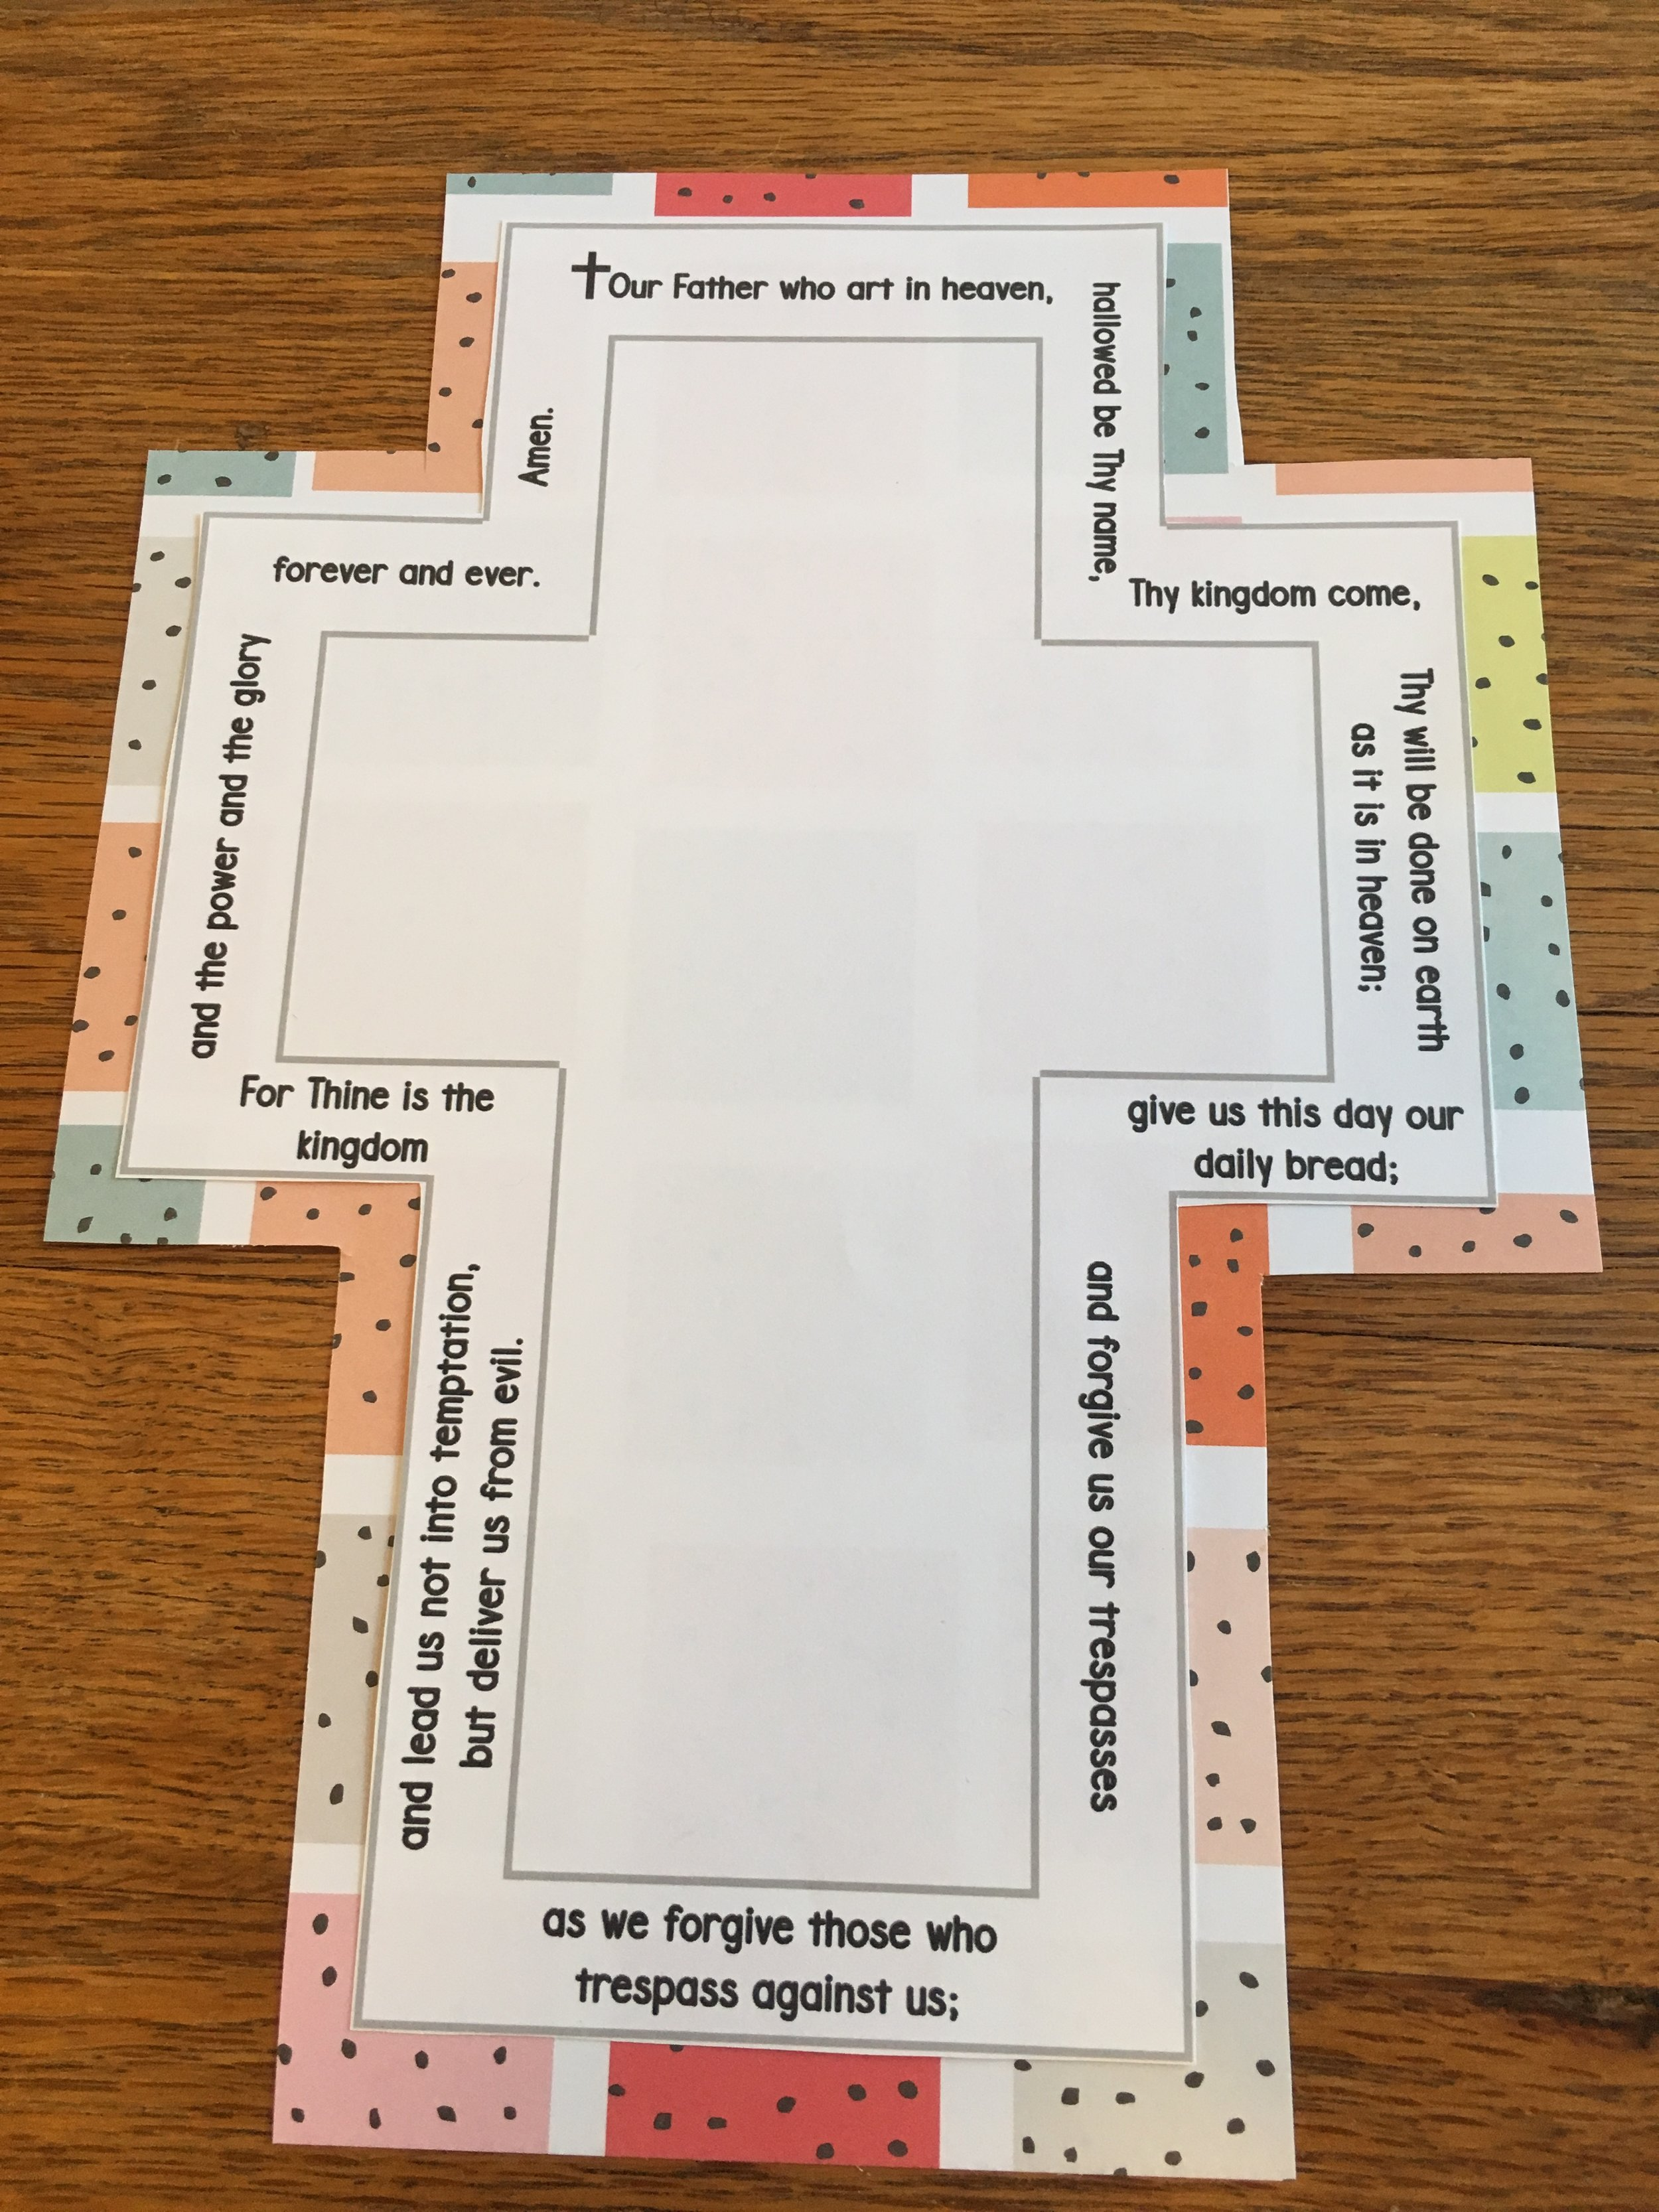 Simply cut out the cross and mount on double-sided printed cardstock with double-sided tape or a glue stick. Then cut out with a border of 3/8- 5/8 inch.